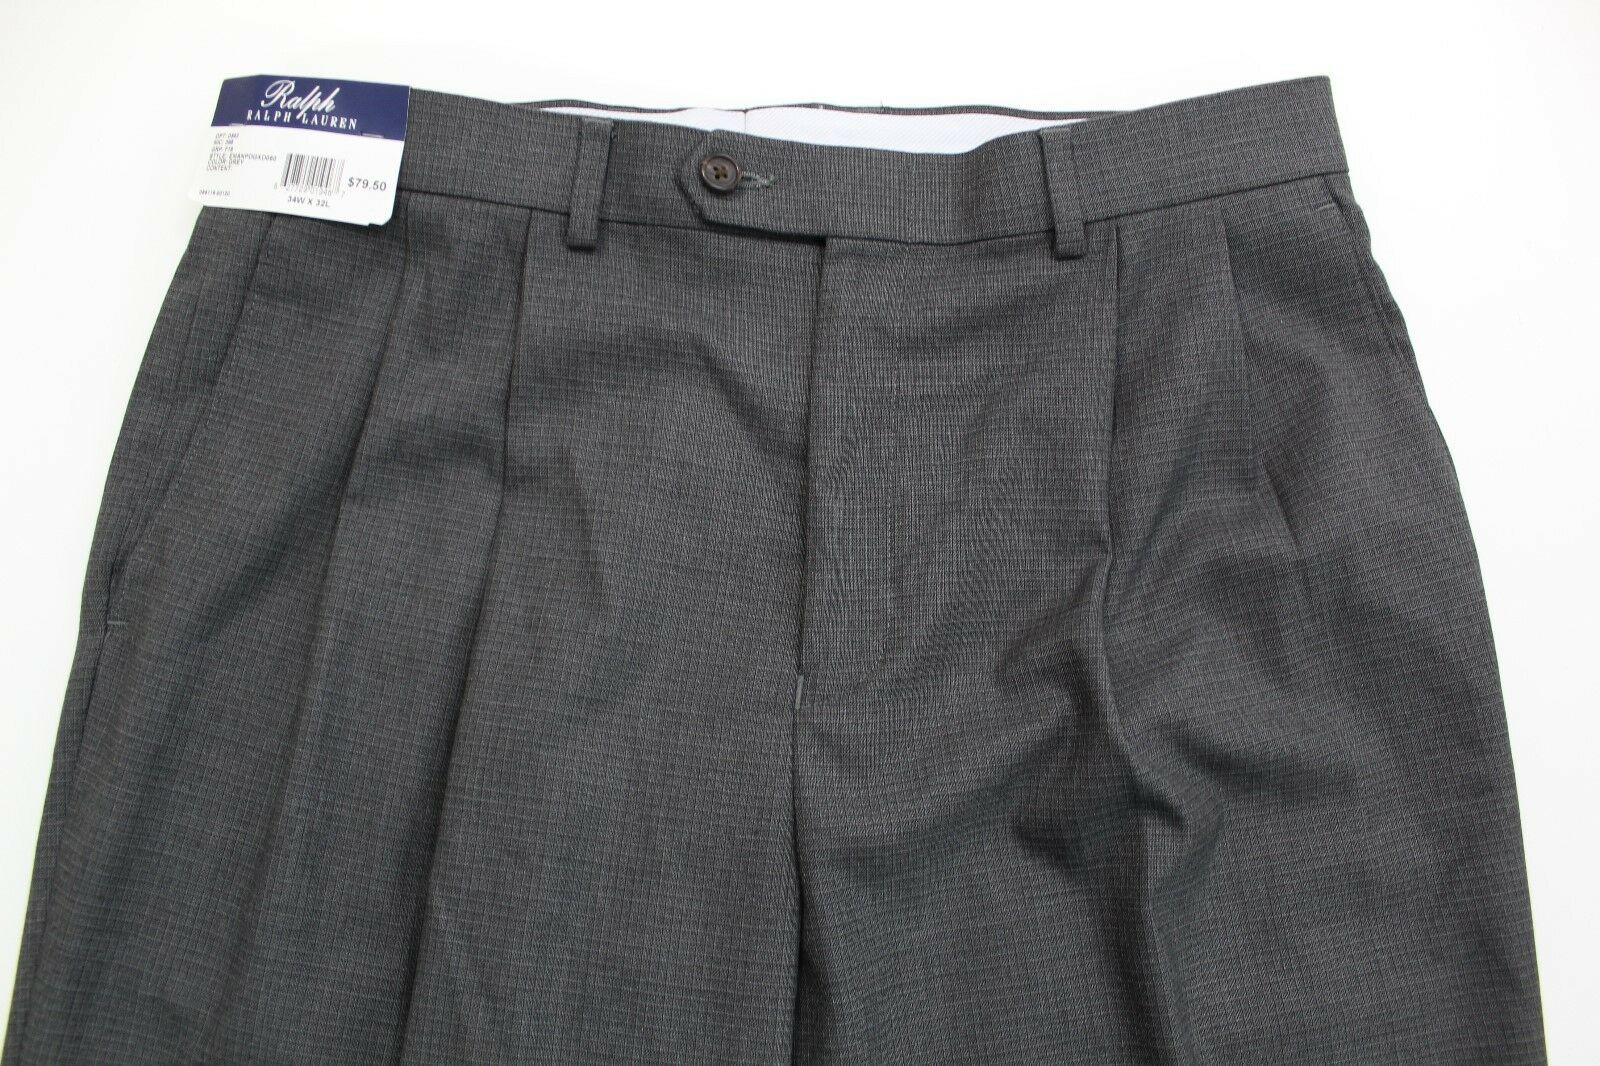 Men's RALPH LAUREN Comfort Flex Dress Pants 34x32 34 32 NWT + New